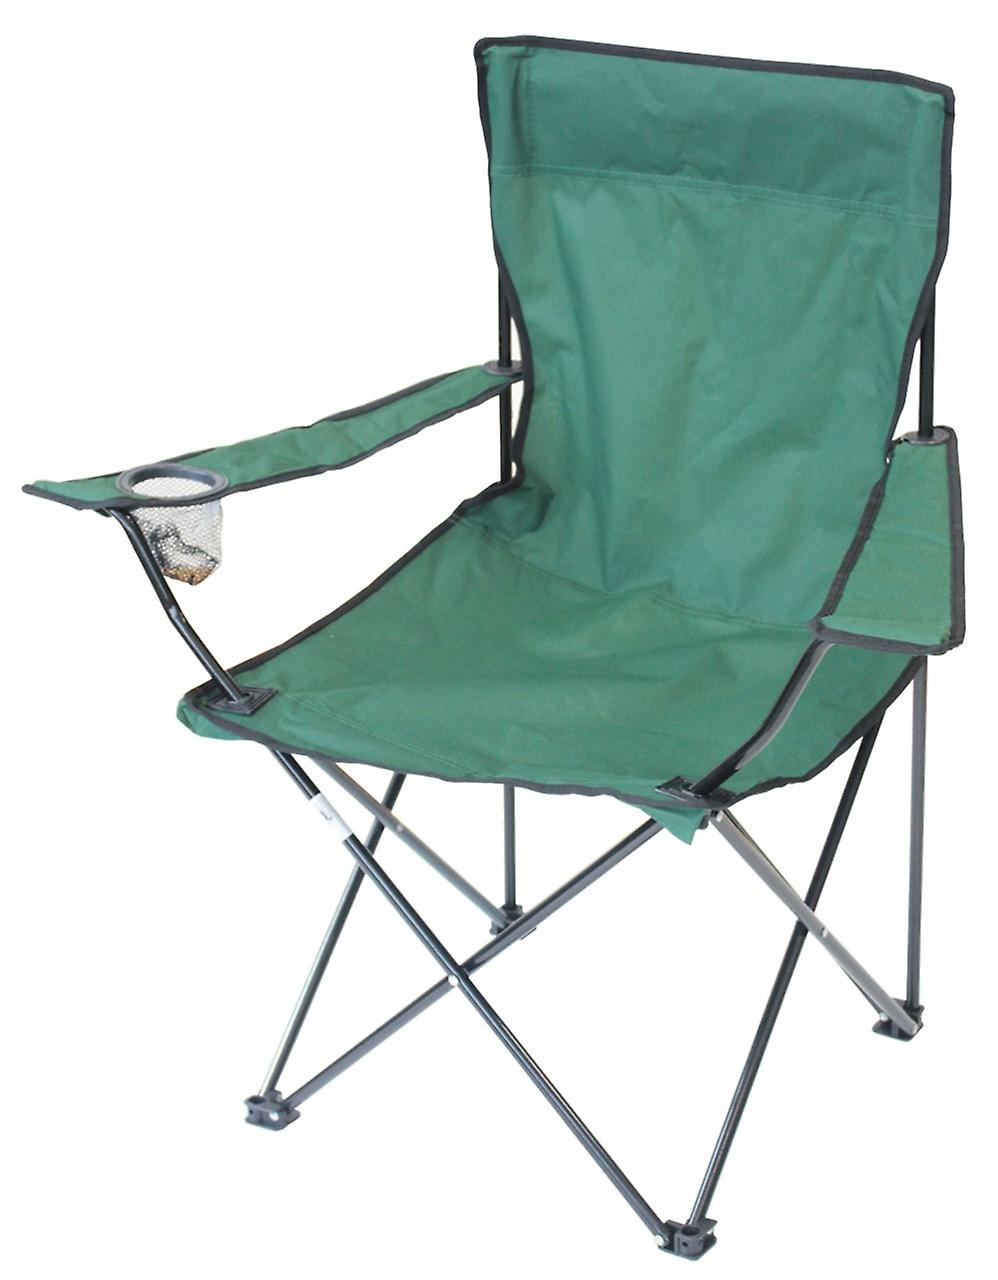 Yellowstone Essential Folding Camping Chair Green